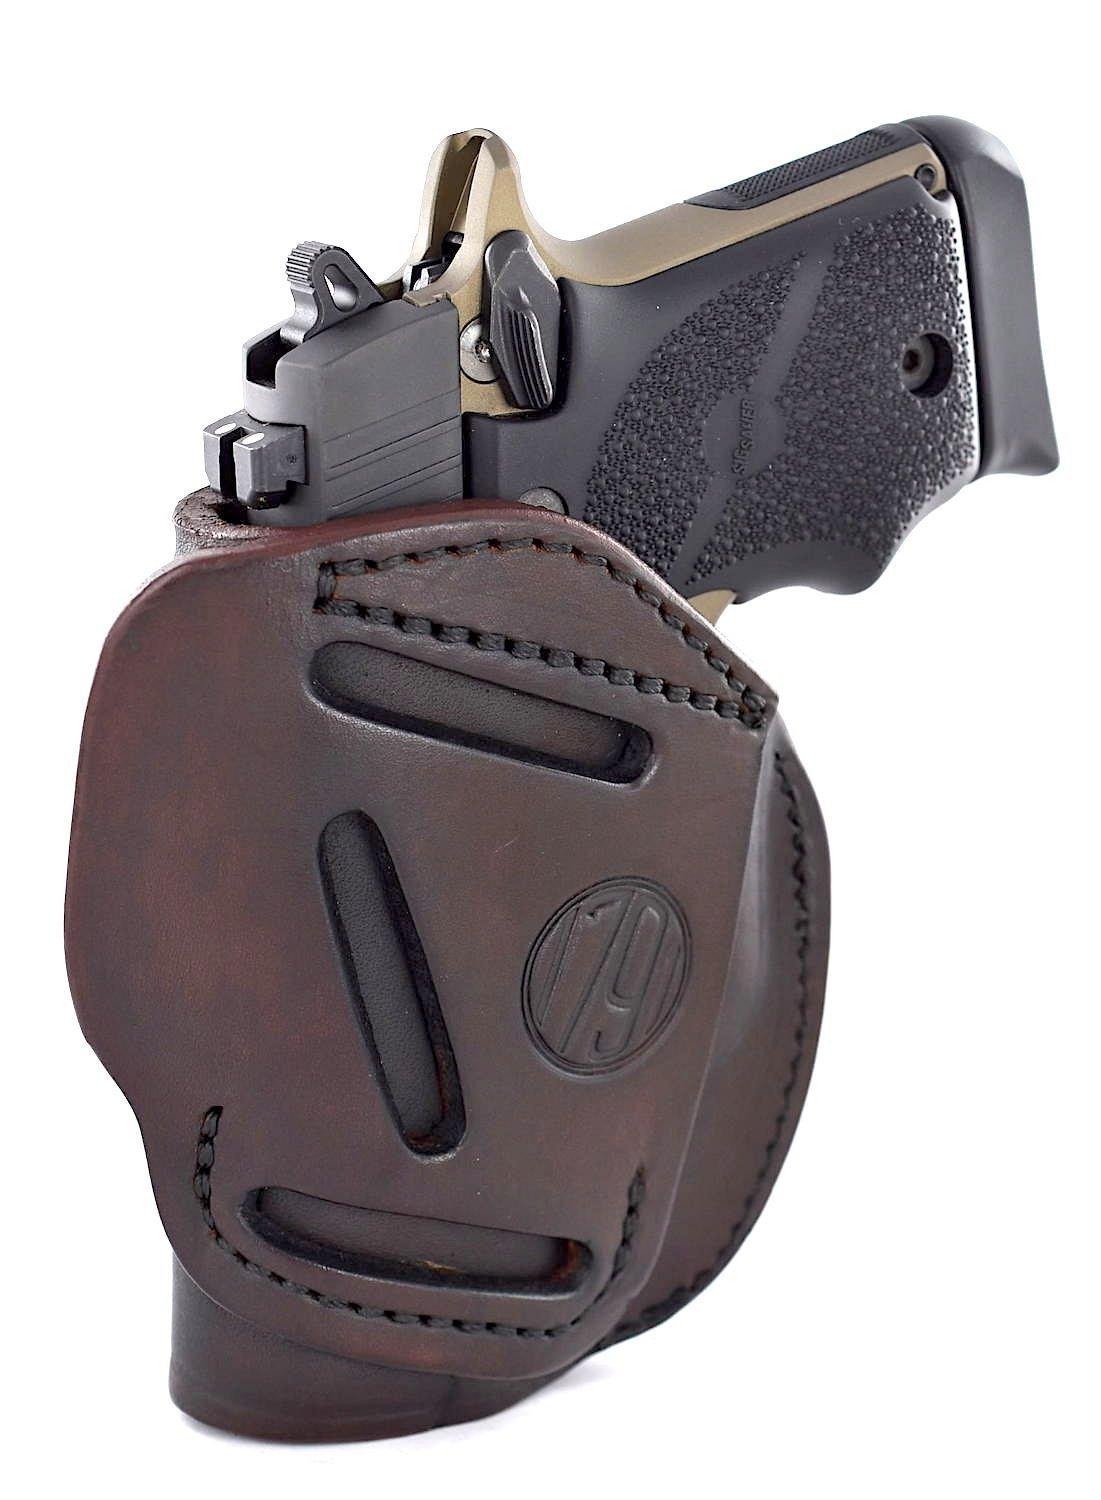 1791 GUNLEATHER 3-WAY SIG P938 Holster - OWB CCW Holster Ambidextrous - Right or Left Handed Leather Gun Holster - Fits Sig Sauer P938, P365 Ruger LCP 380, SW Bodyguard (3WH SIZE 2)